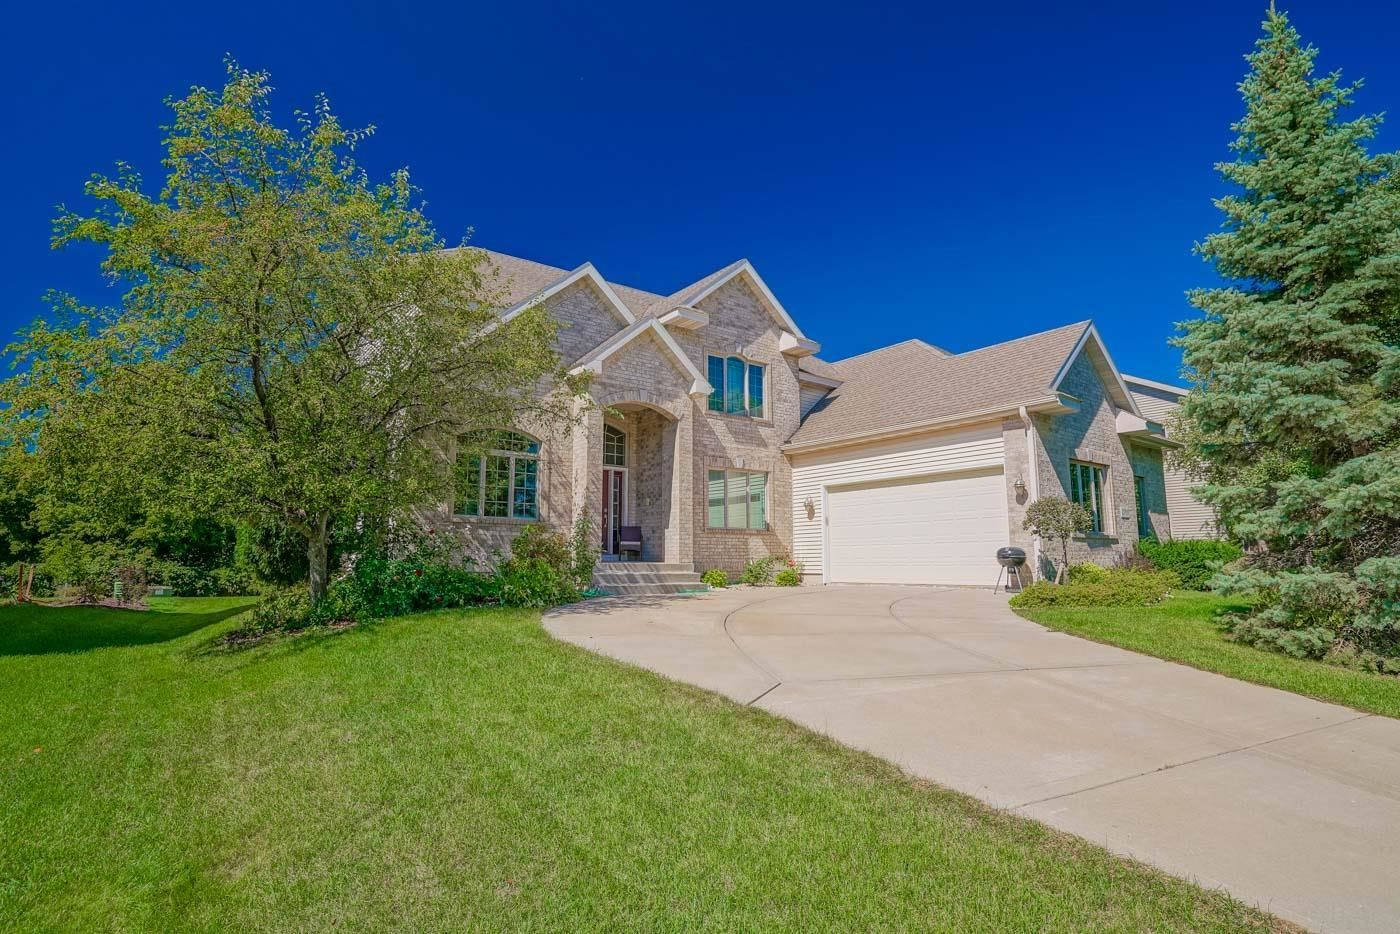 Photo for 2793 Hollyhock St, Fitchburg, WI 53711 (MLS # 1920945)